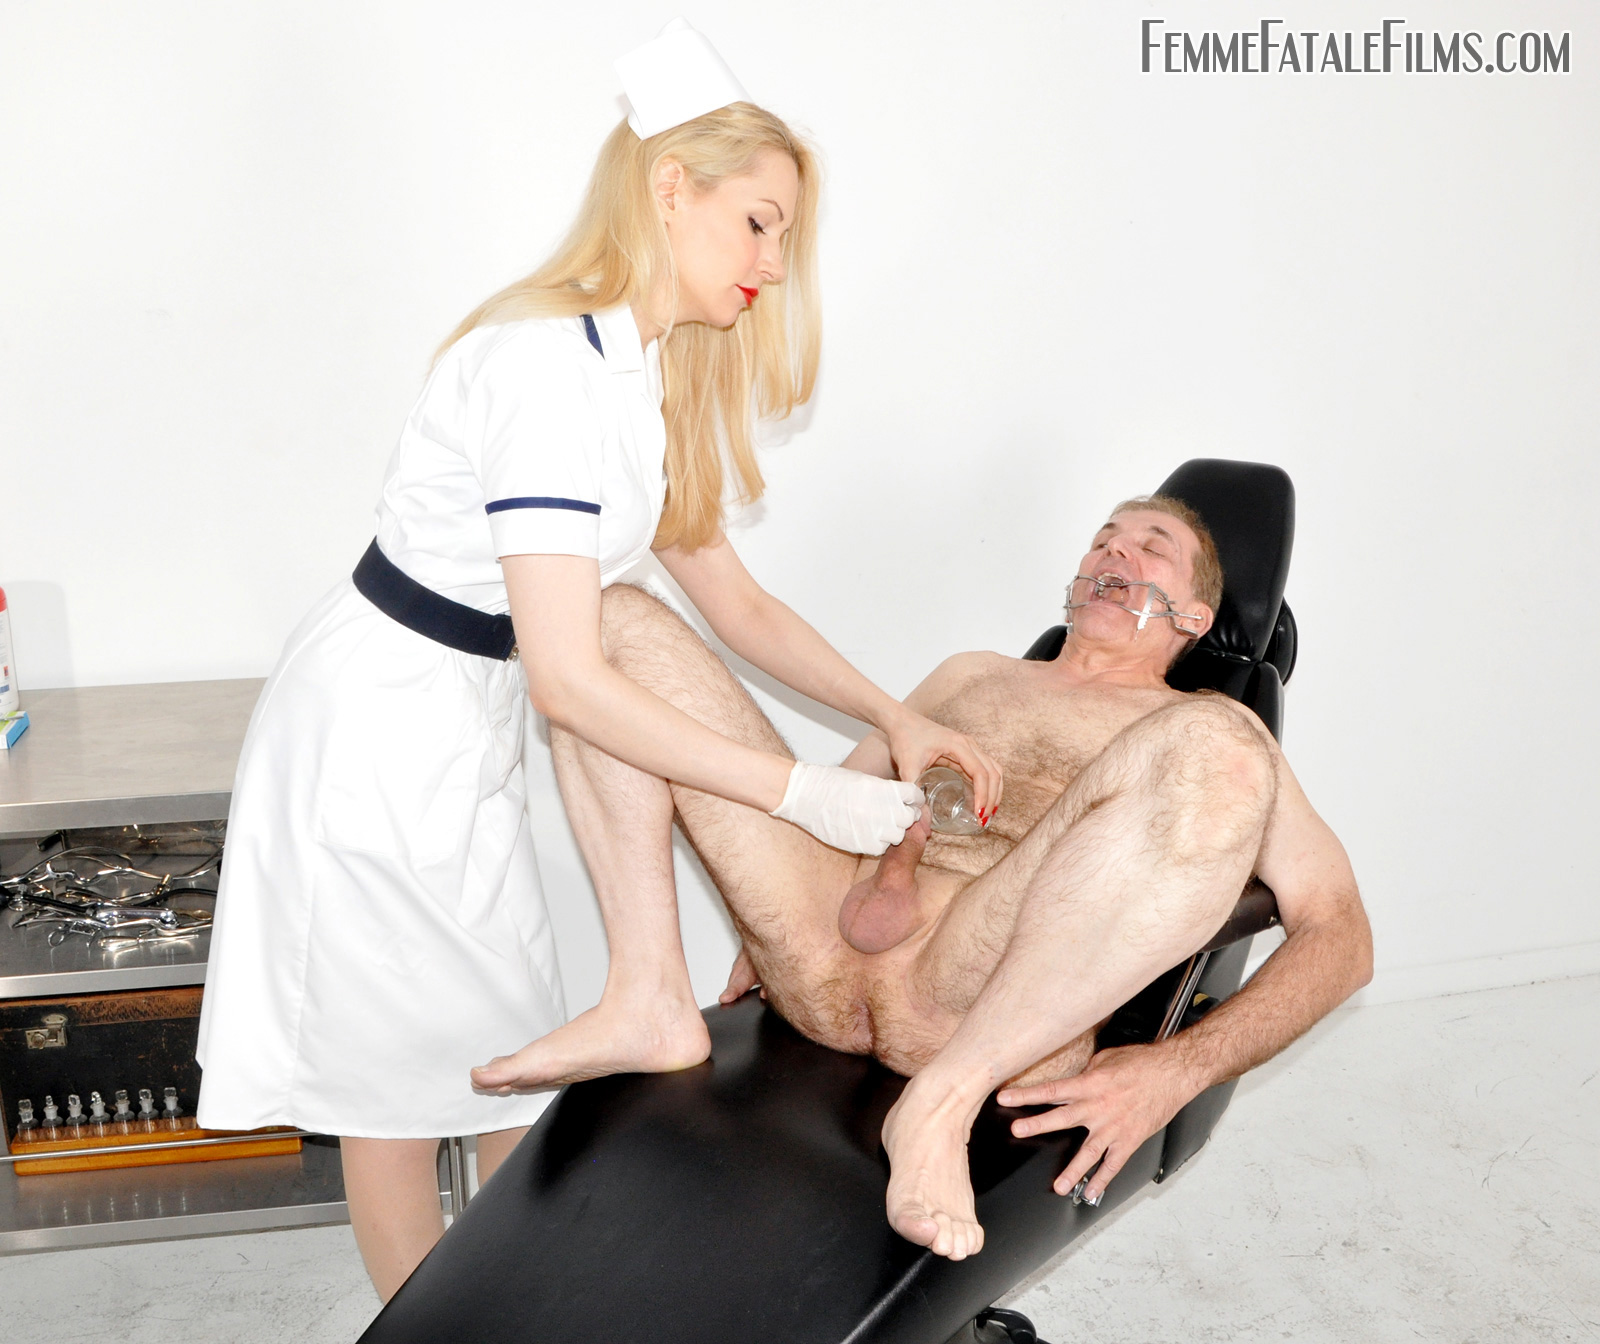 superb femdom selected gallery 32 of femme fatale films